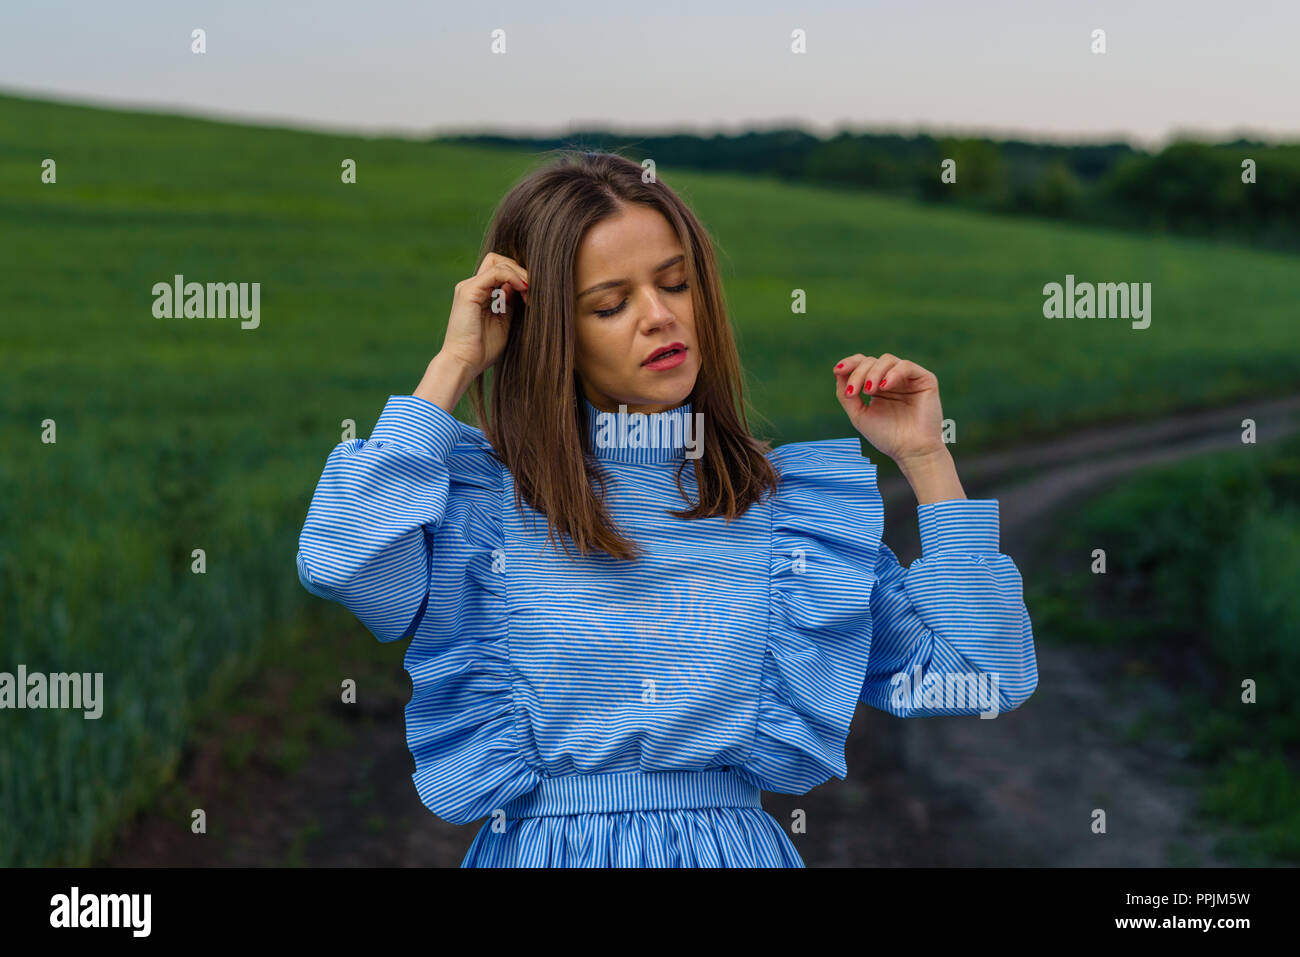 Young woman in blue and white striped dress is standing on the country road with her hands raised near field of green wheat during spring evening. Wom - Stock Image